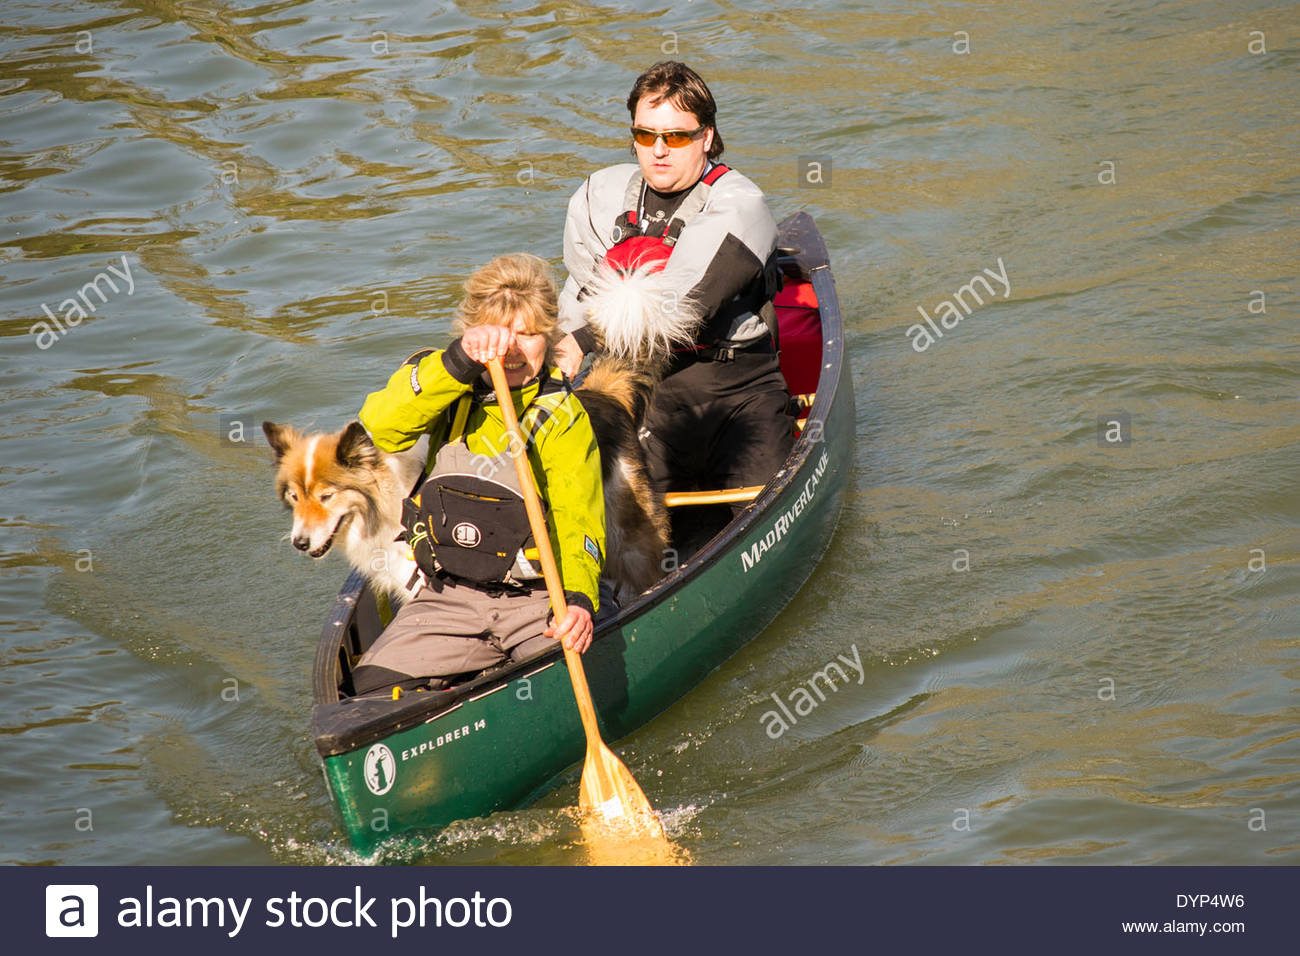 Canoeists on the River Cam in Cambridge, carrying a large dog as a passenger - Stock Image